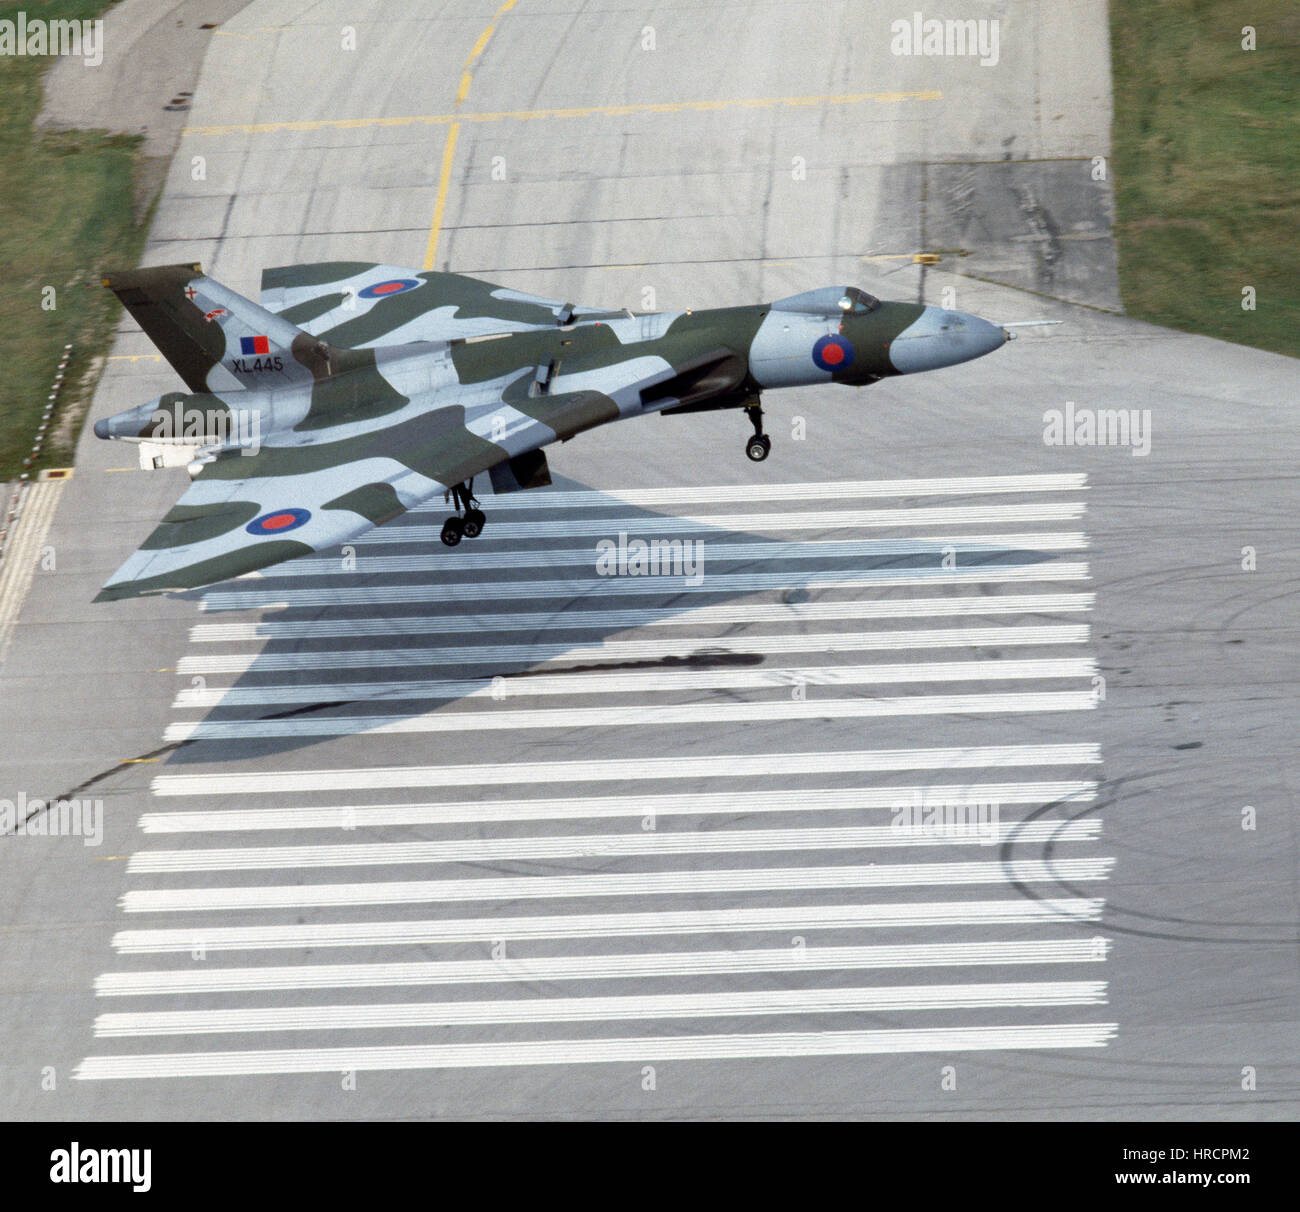 Avro Vulcan B2 bomber about to land. - Stock Image